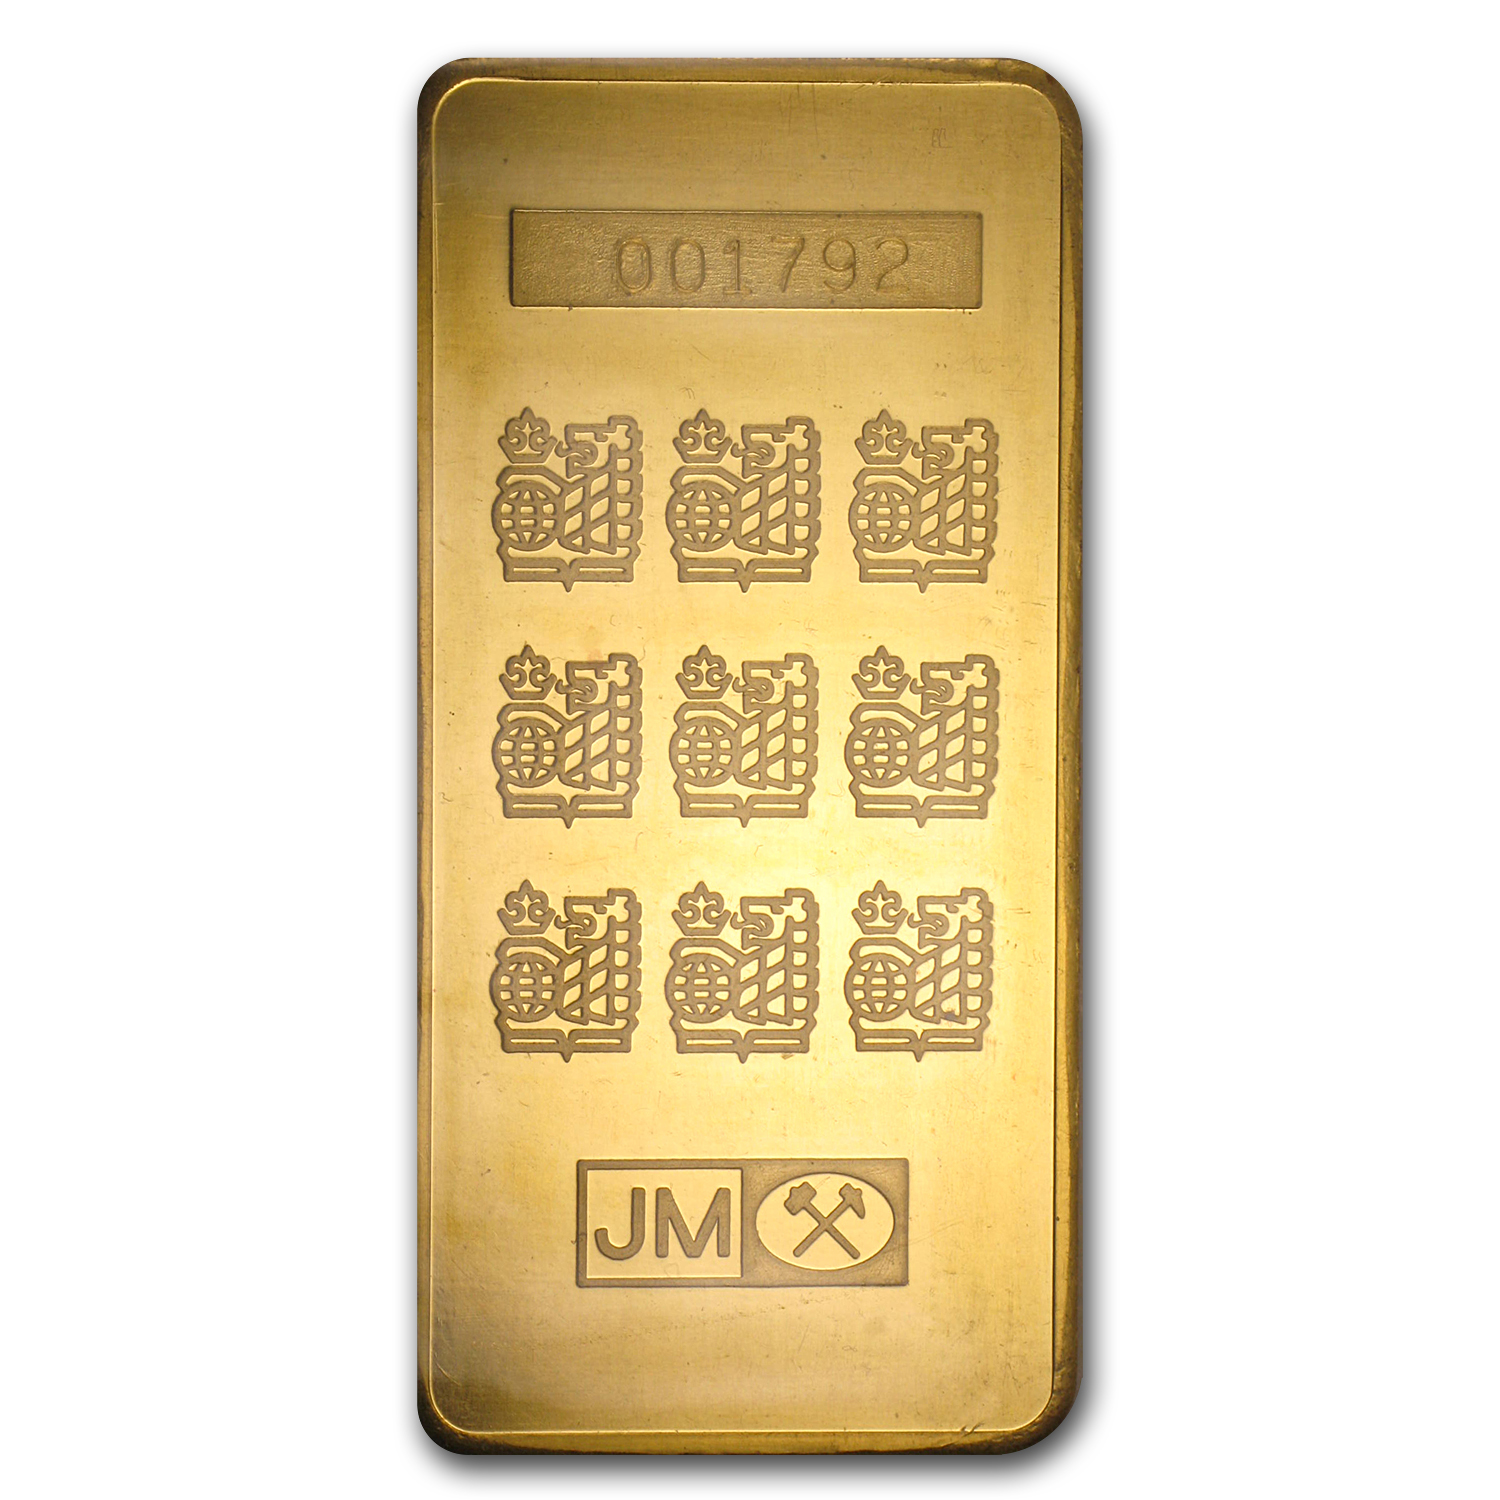 10 oz Gold Bar - Johnson Matthey (Royal Bank of Canada)